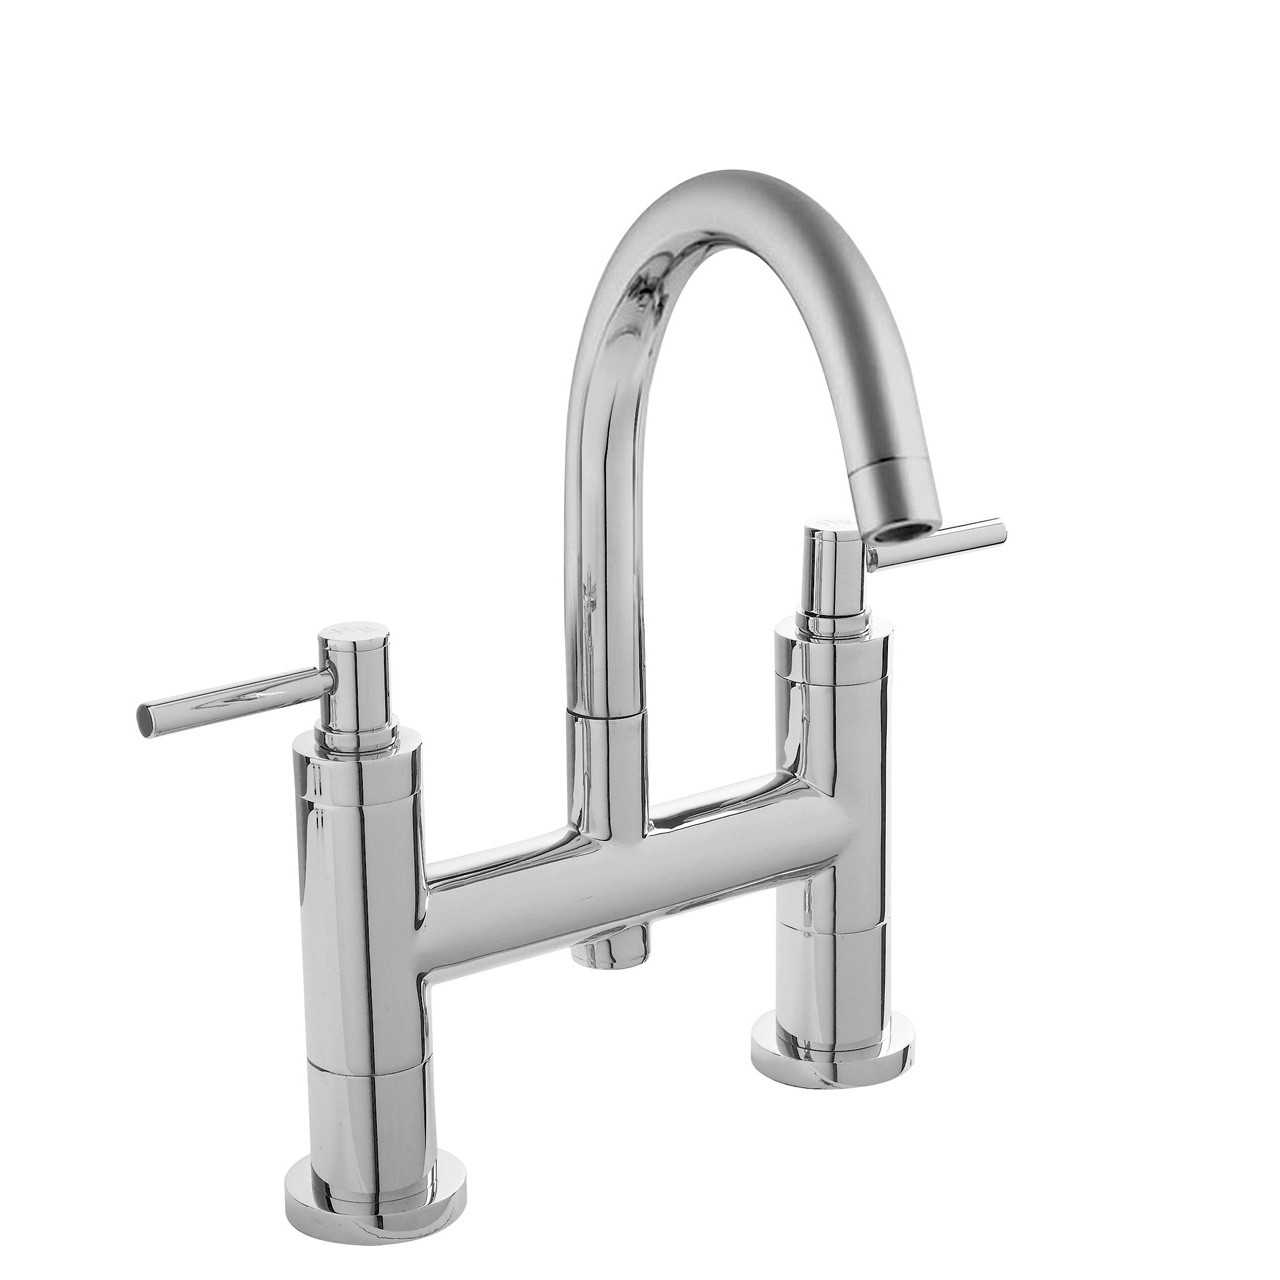 Hudson Reed Chrome Tec Lever Bath Filler - TEL353